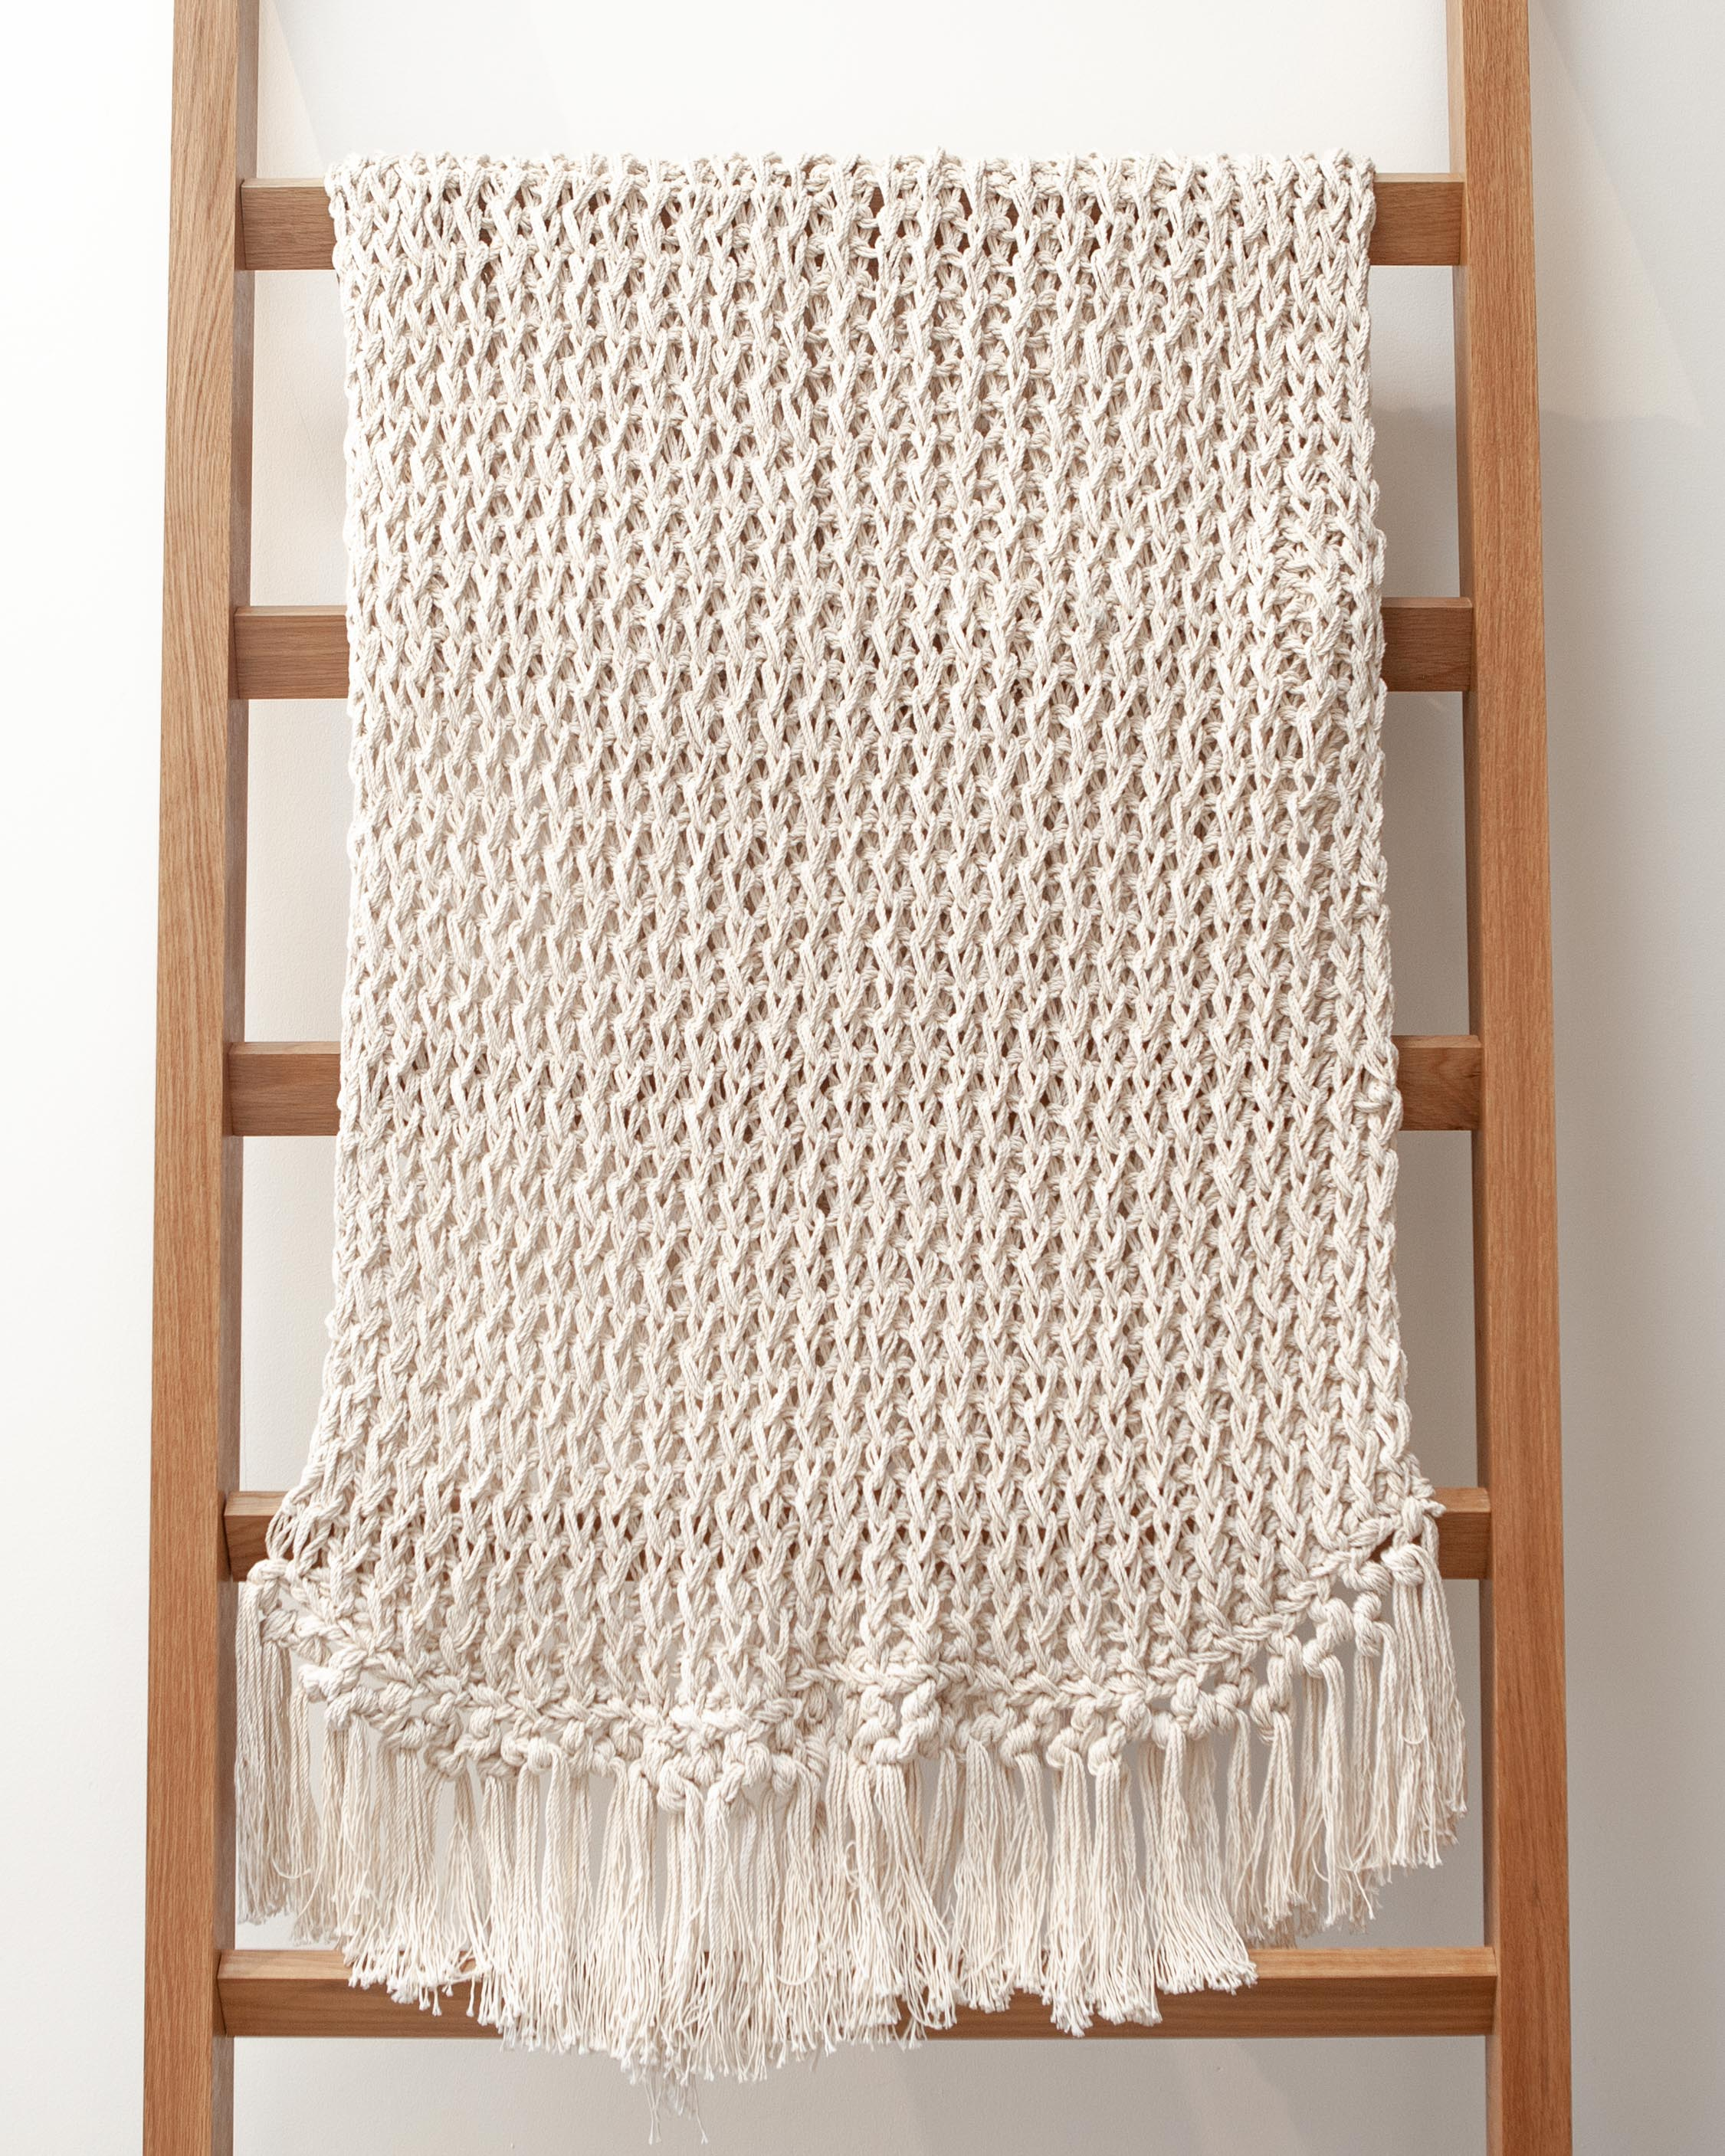 Recycled Cotton Yucatan Throw - Natural